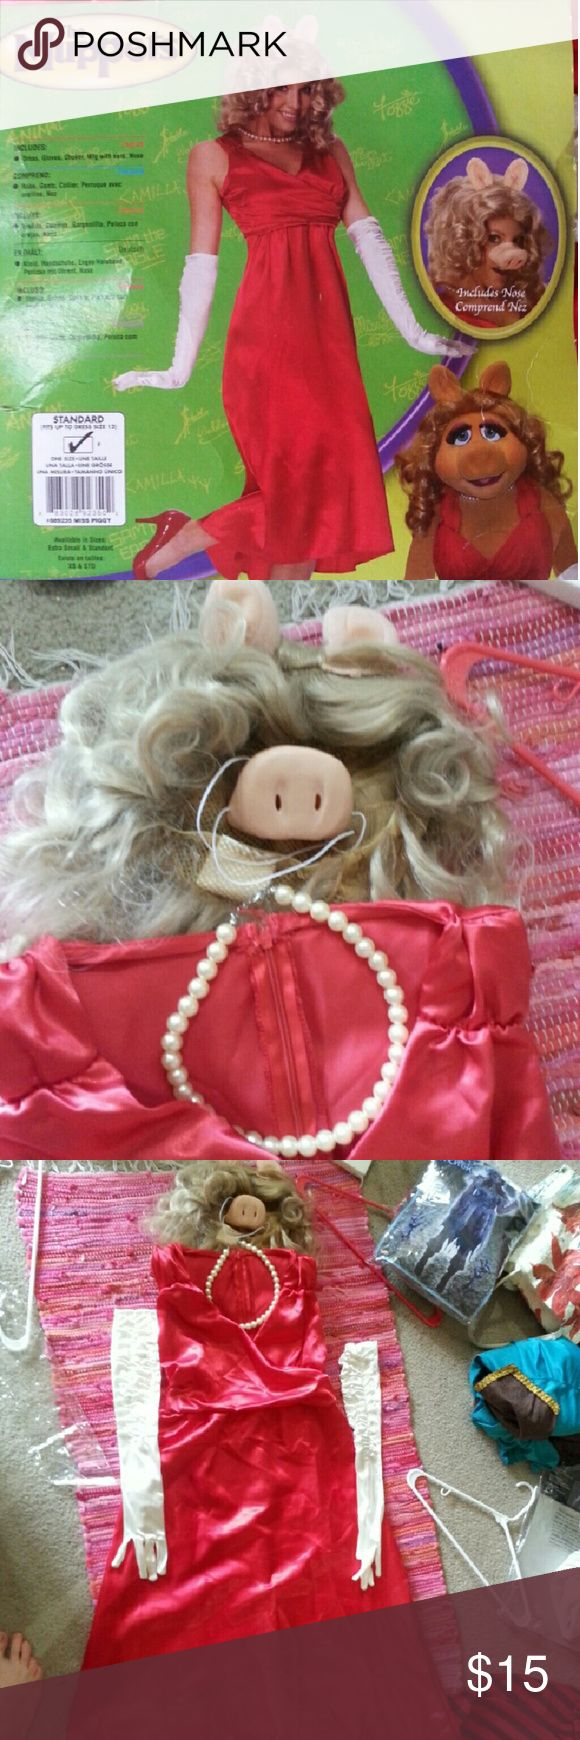 Miss Piggy Halloween Costume Miss Piggy Halloween costume. One size, fits between a 6-12. Comes with wig, gloves, faux pearl necklace, and piggy nose. Worn one, a super cute costume! Other